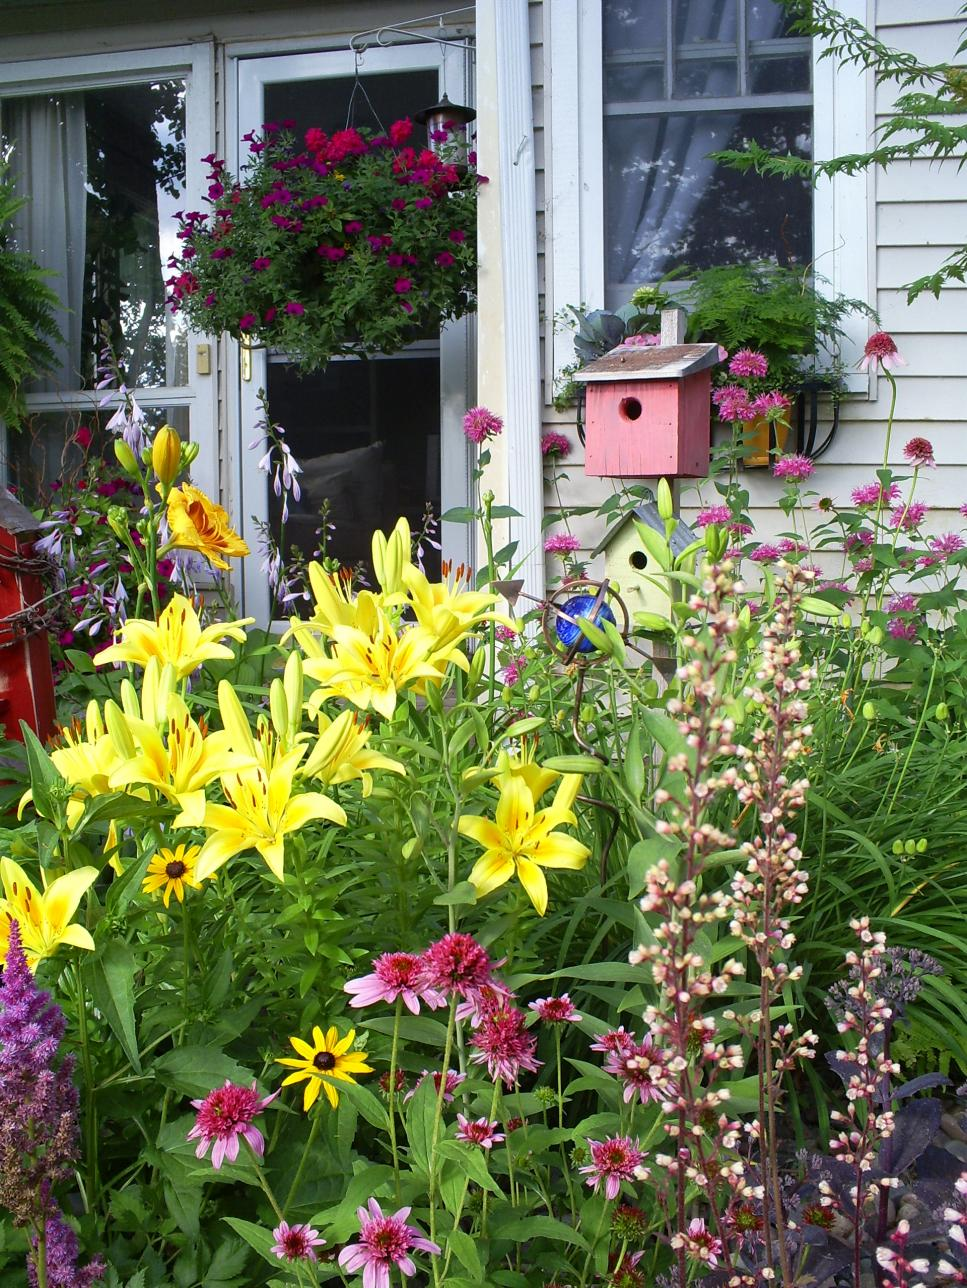 Cottage garden designs we love hgtv for Cottage garden plans designs